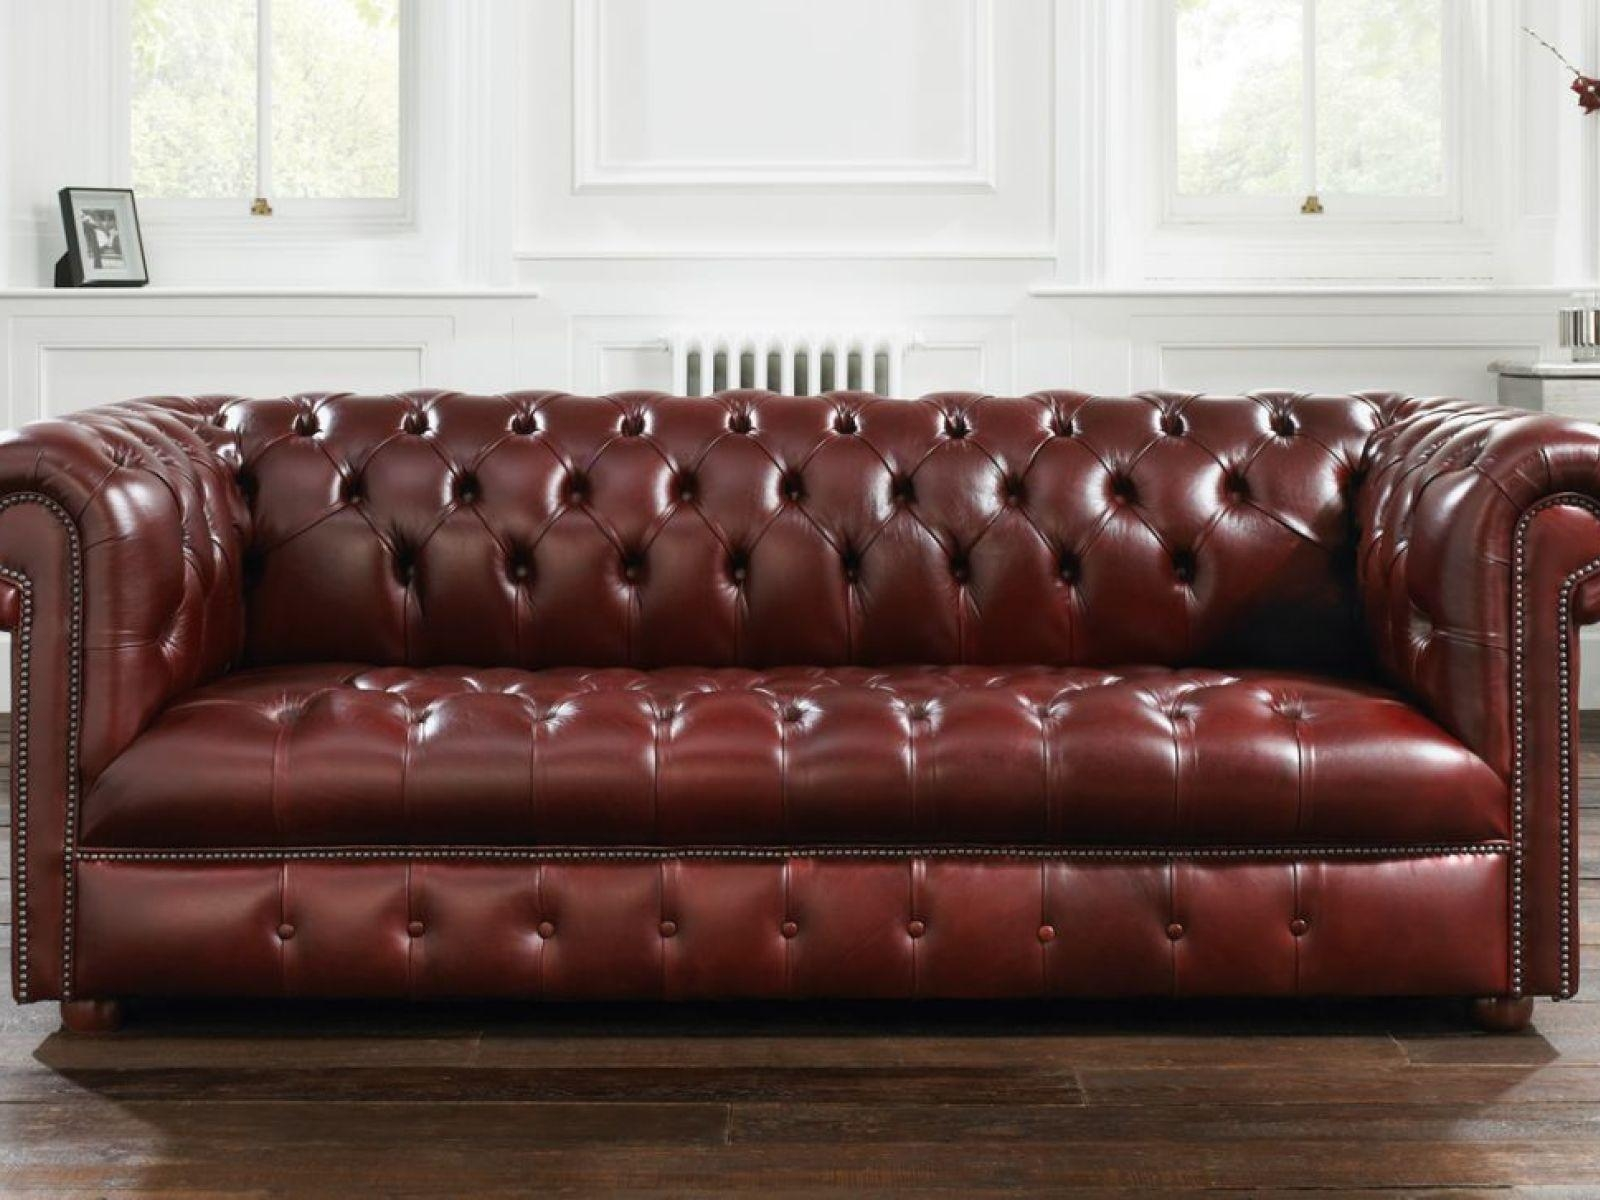 ▻ Sofa : 3 Living Room Focus On Luxury Red Leather Chesterfield Intended For Dark Red Leather Sofas (Image 1 of 20)